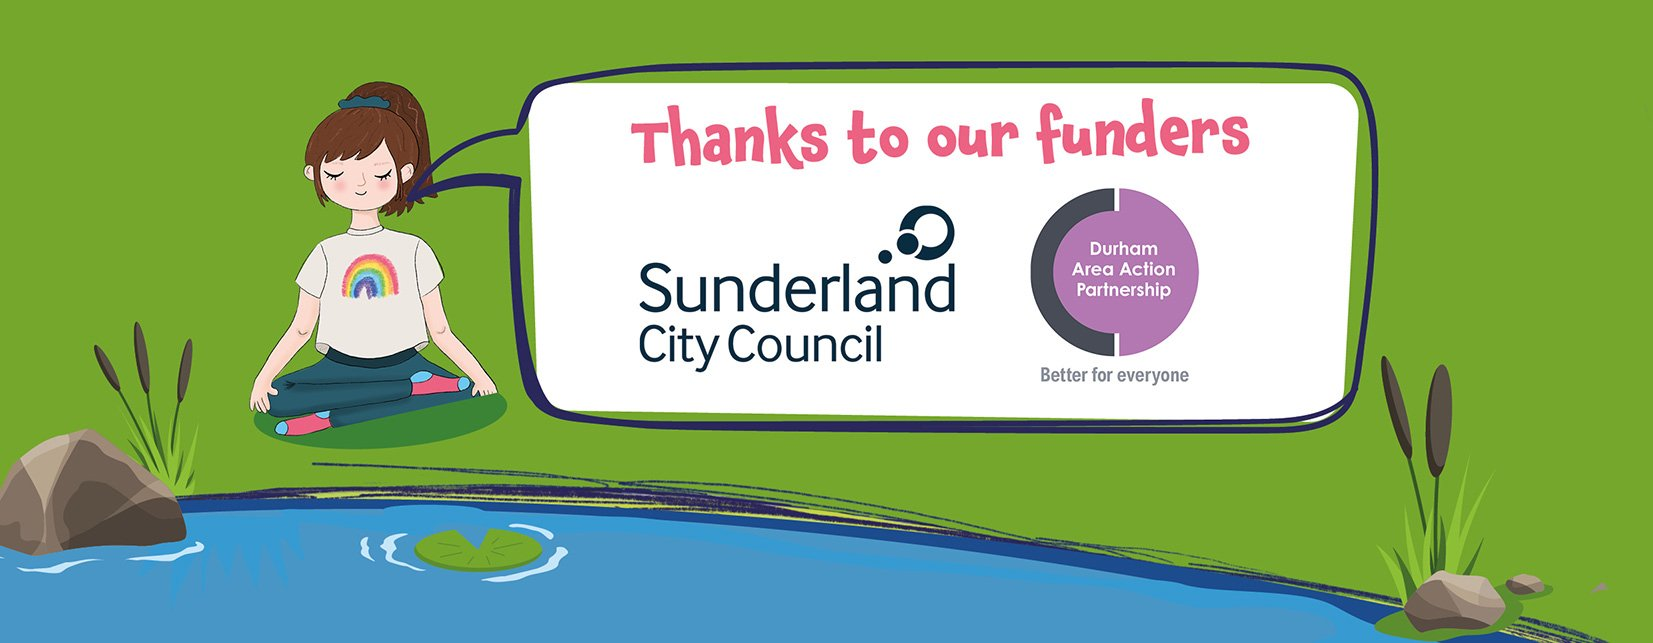 Thanks to our funders, Sunderland City Council and Durham AAP